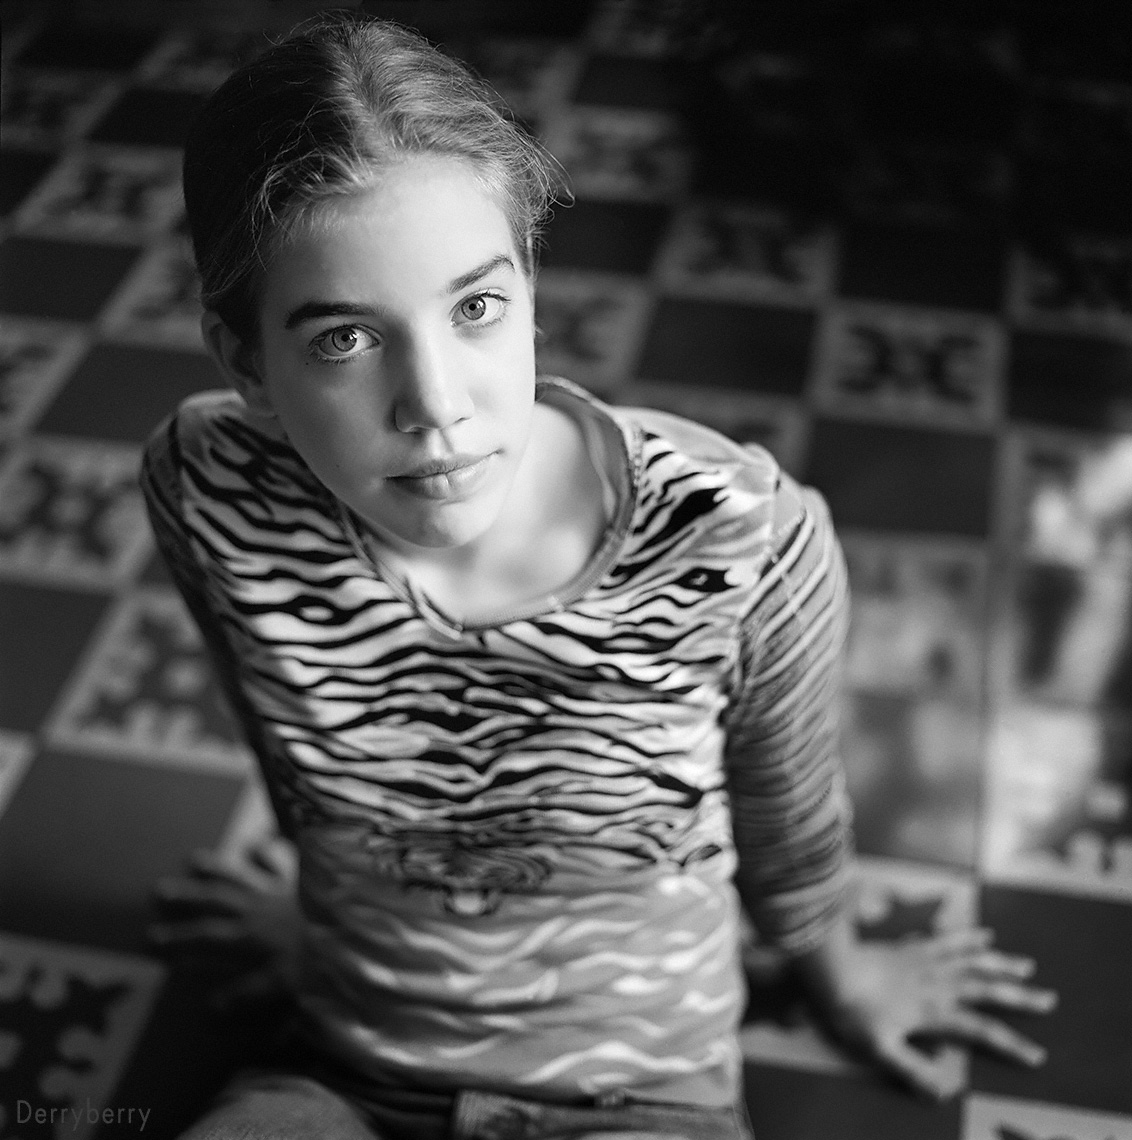 Portrait in black and white of tween girl in a tiger print shirt sitting on a beautiful vintage tile floor